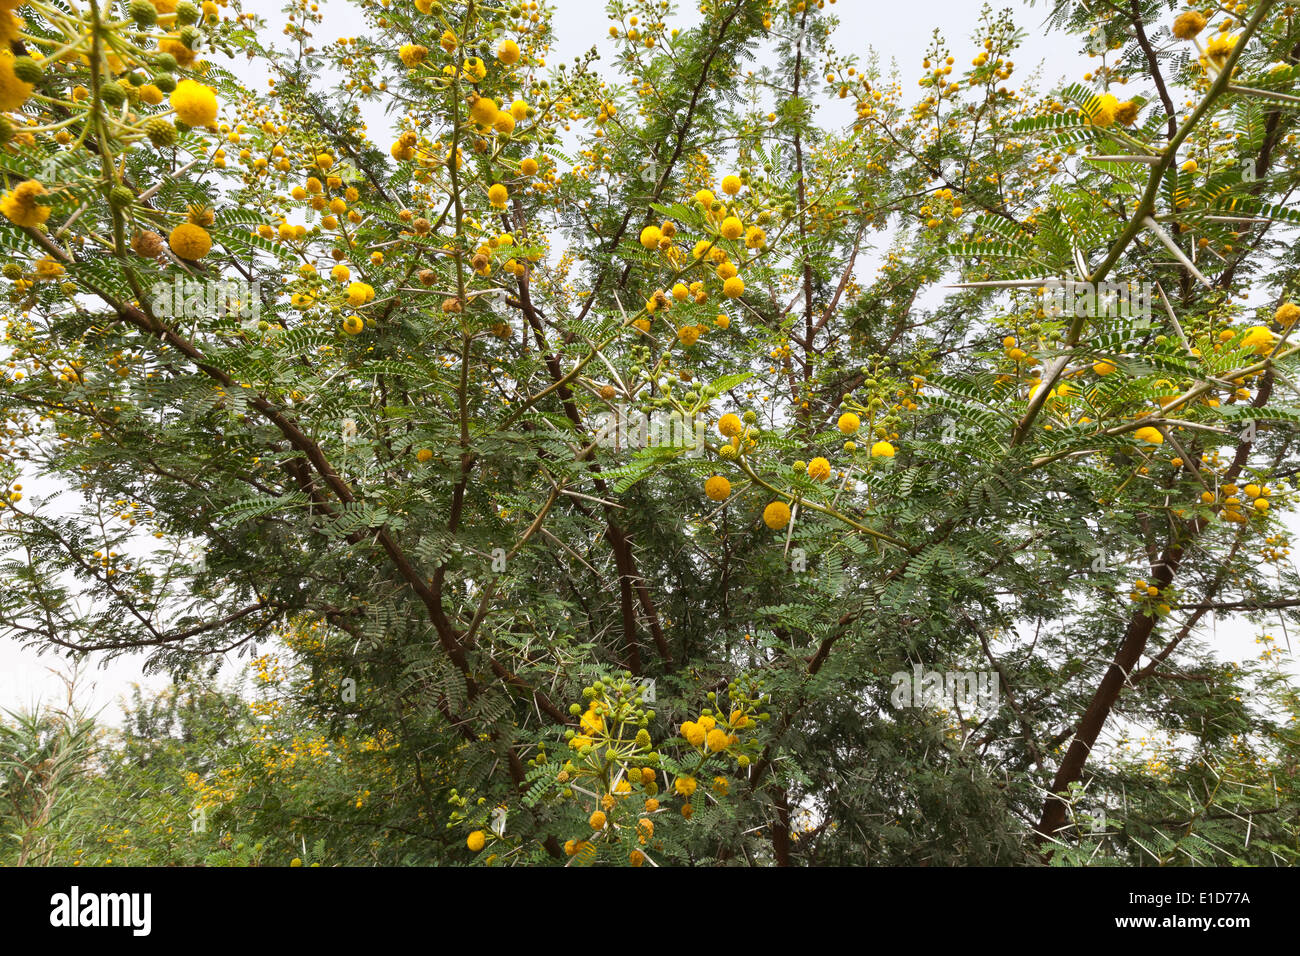 Detail of a Vachellia farnesiana bush with yellow flowers and spines - Stock Image